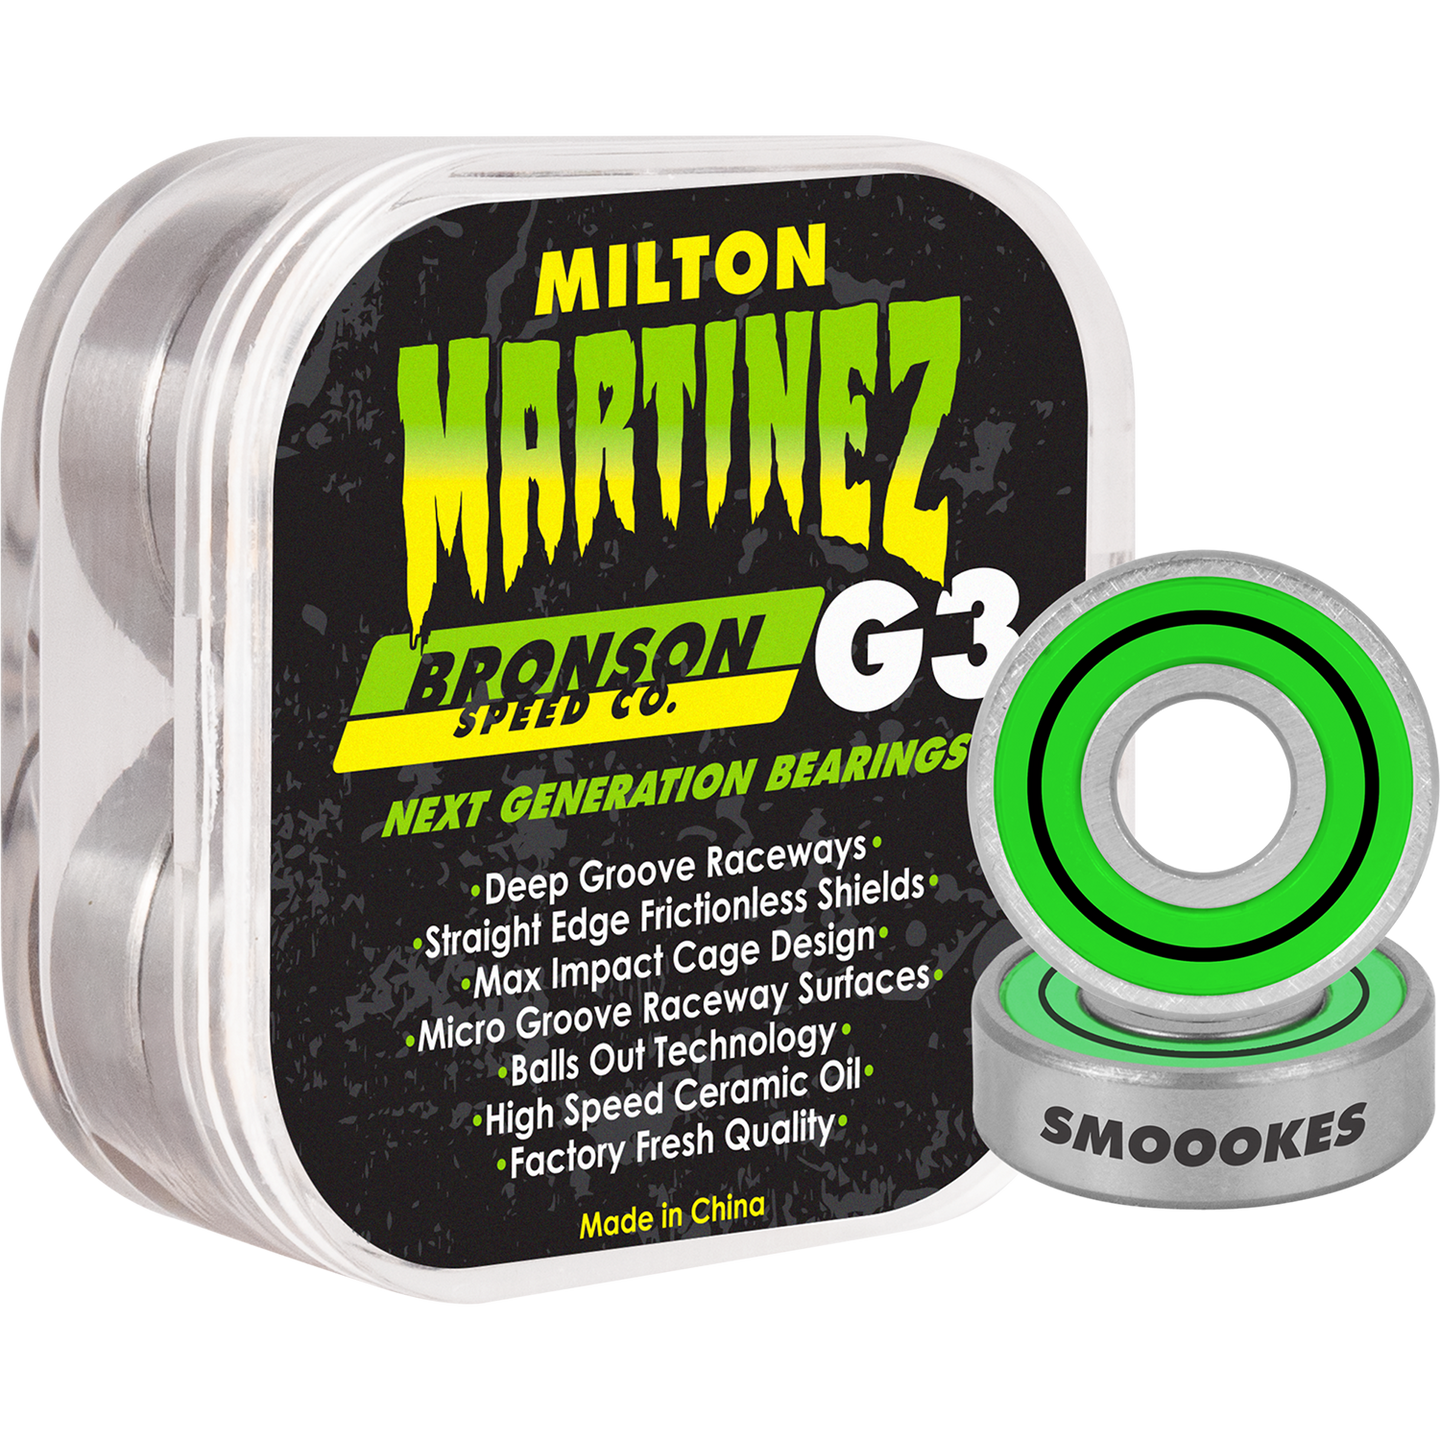 Bronson Speed Co. x Creature Milton Martinez Pro Colorway G3 Bearings 8 Pack - Feet First NJ